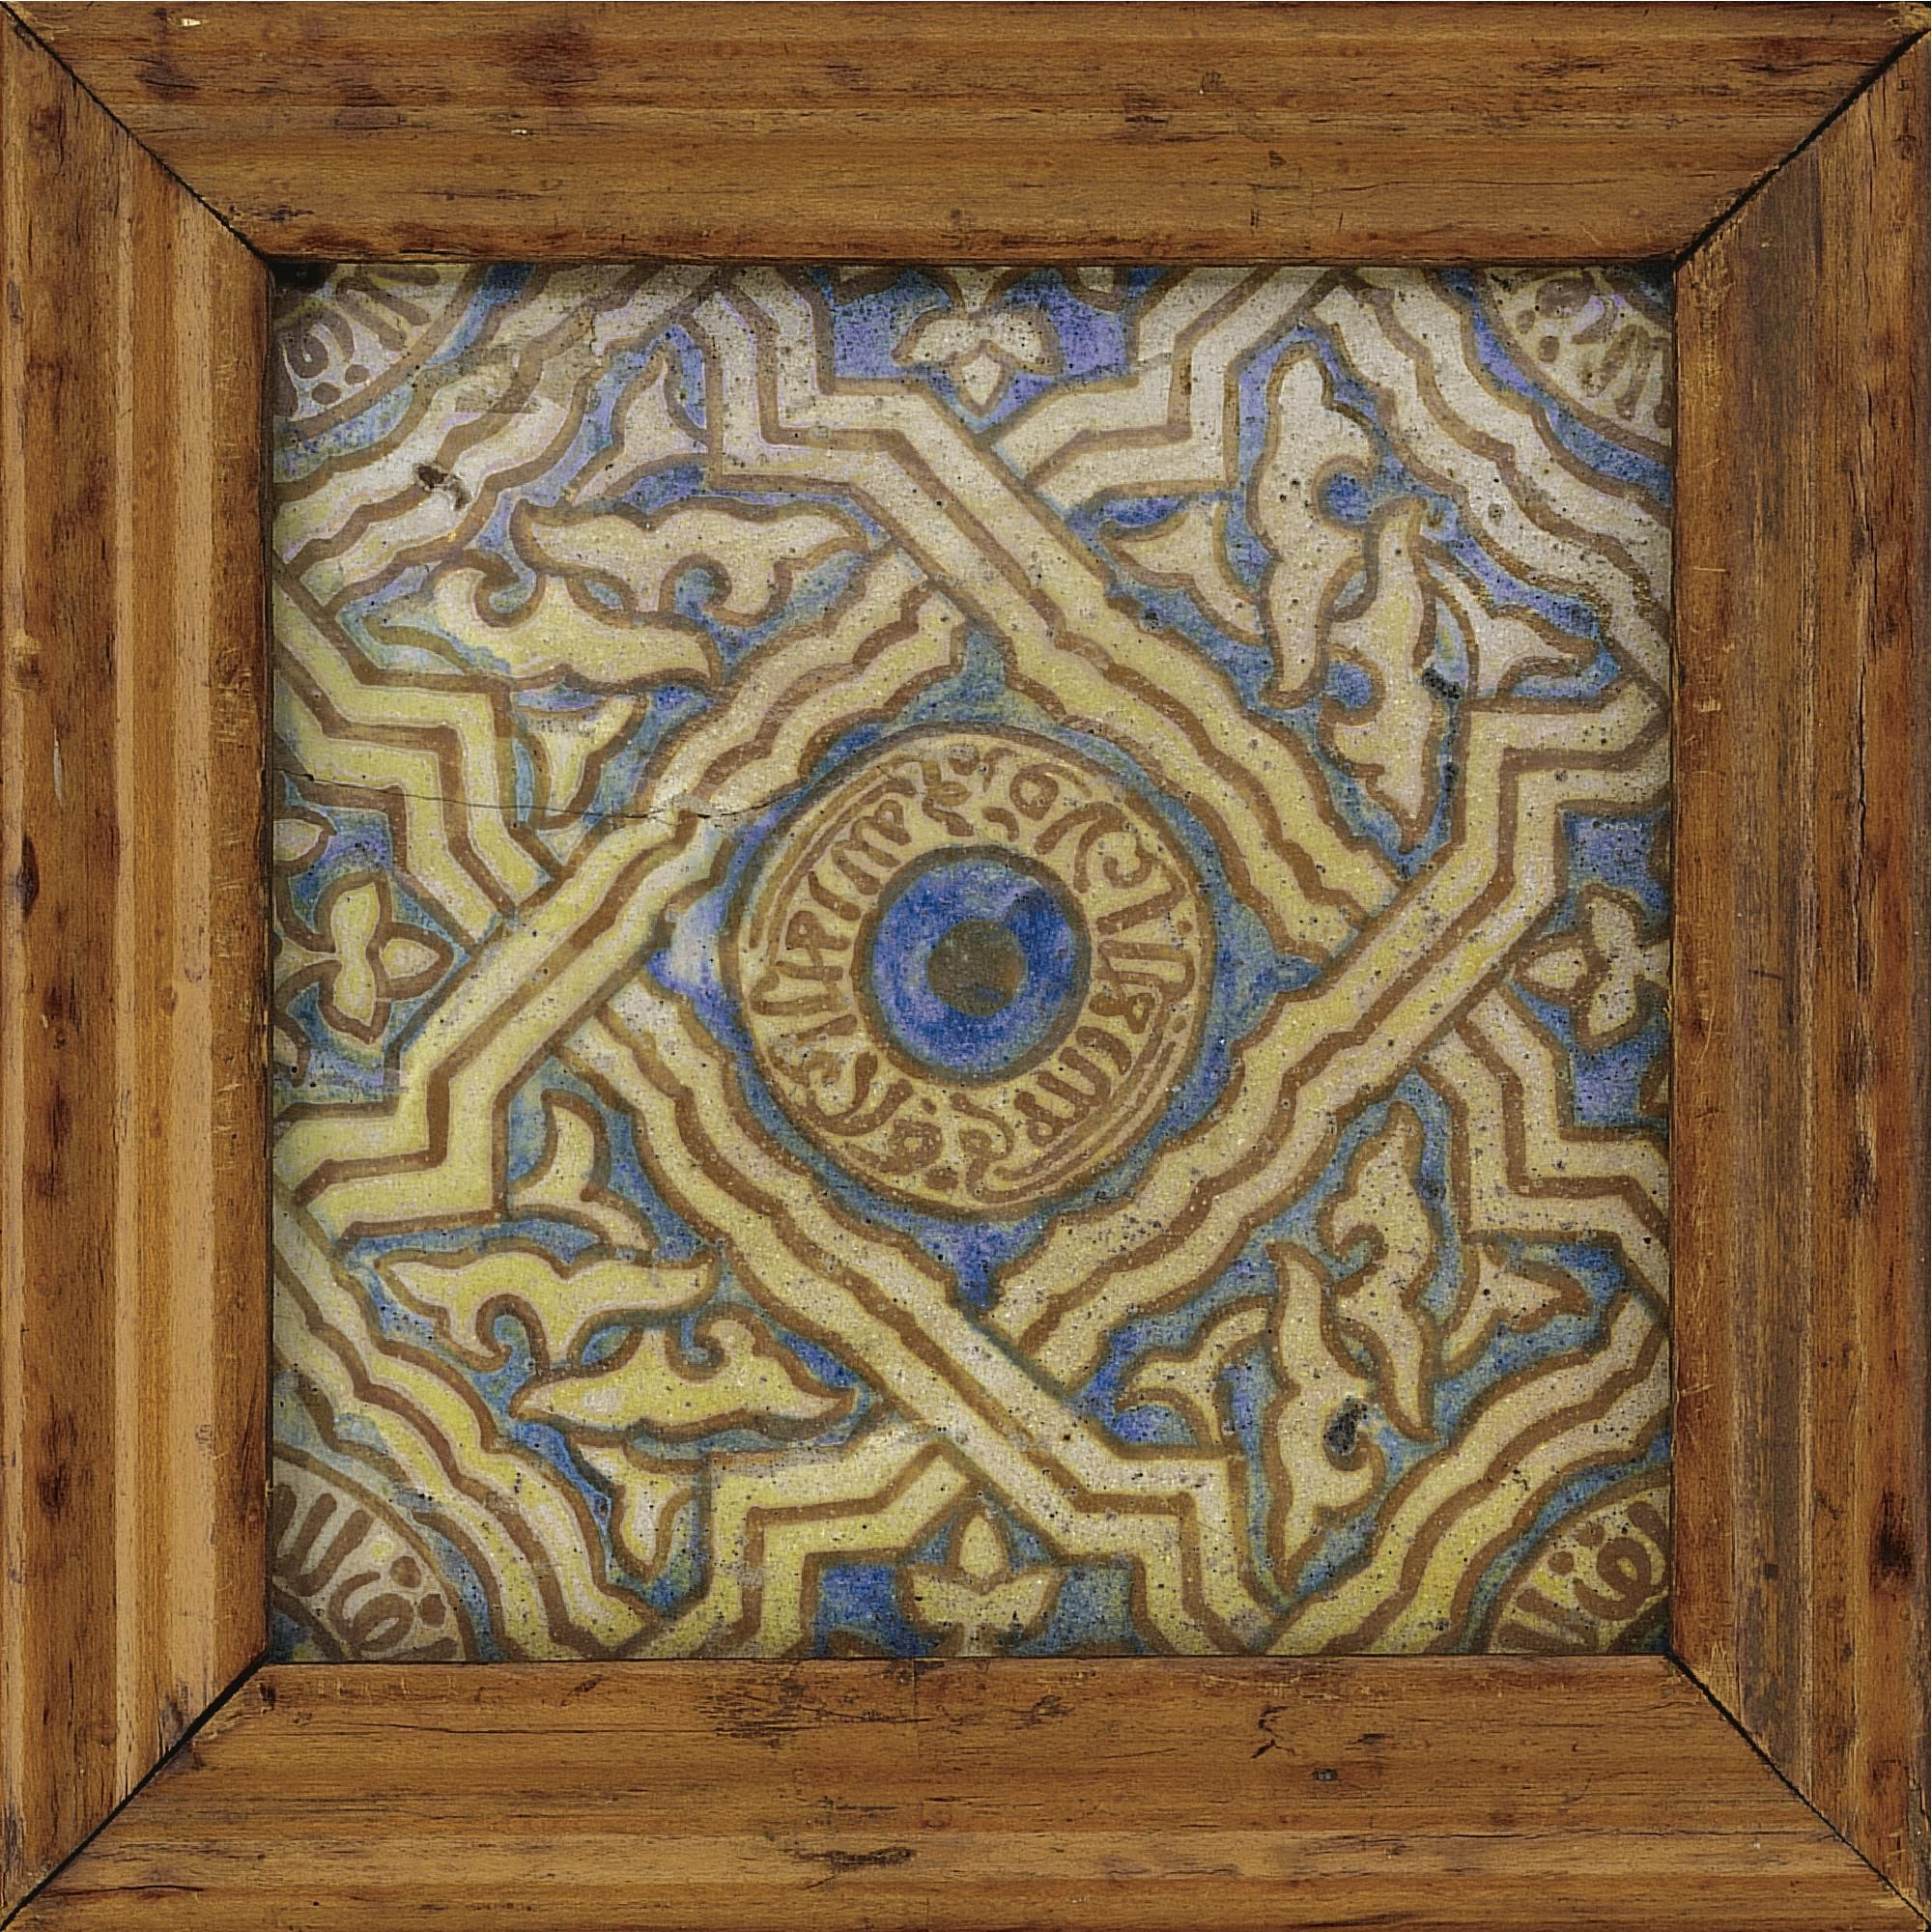 A NASRID LUSTRE POTTERY TILE, SPAIN, 14TH CENTURY of square form